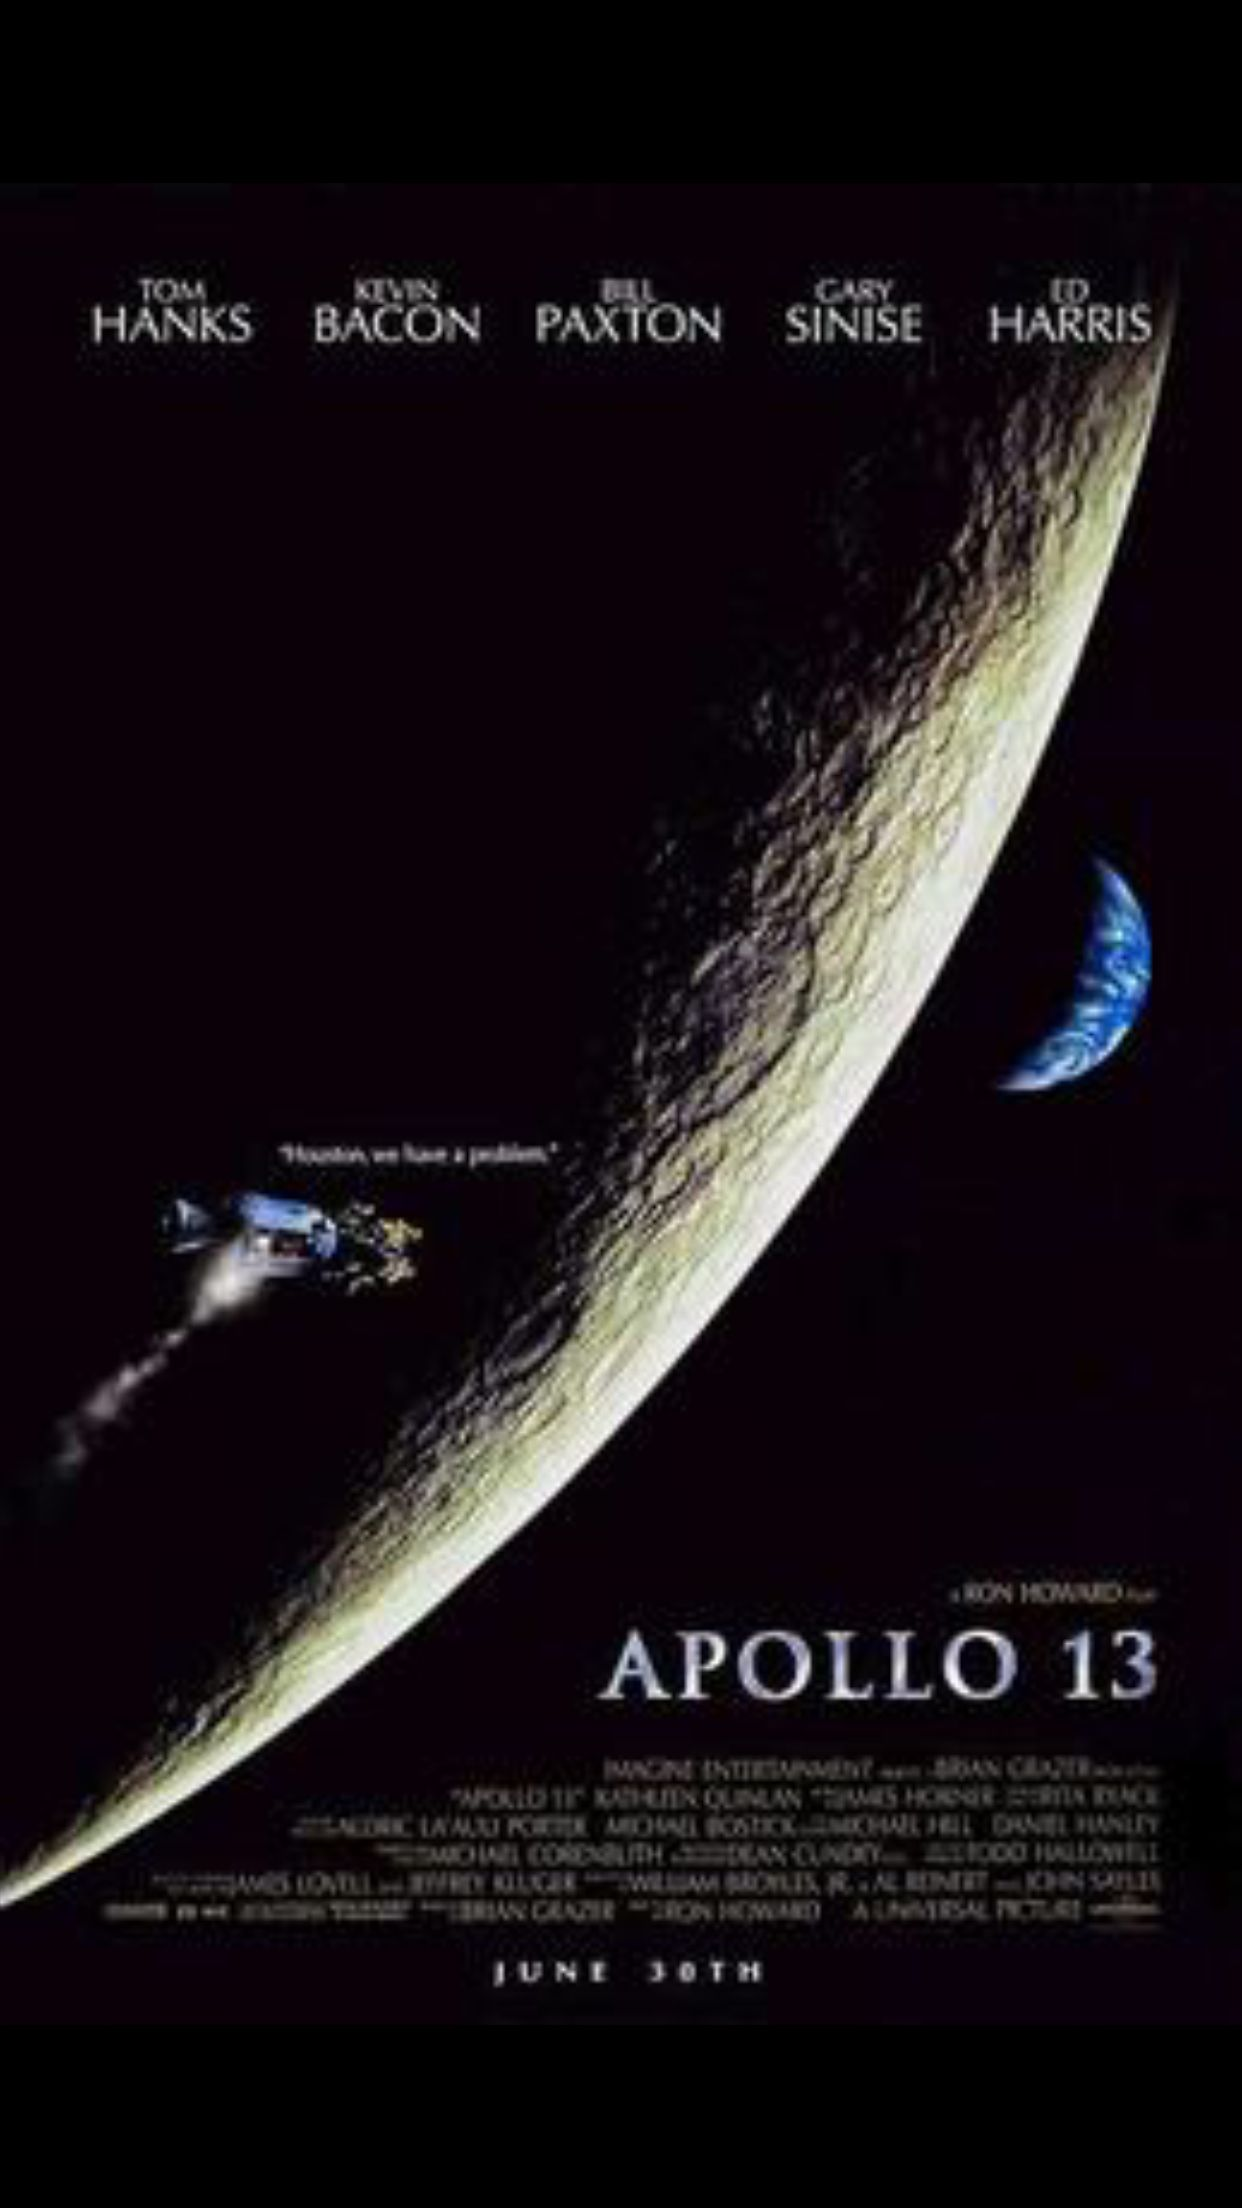 best images about apollo astronauts fred 17 best images about apollo 13 astronauts fred haise and nasa